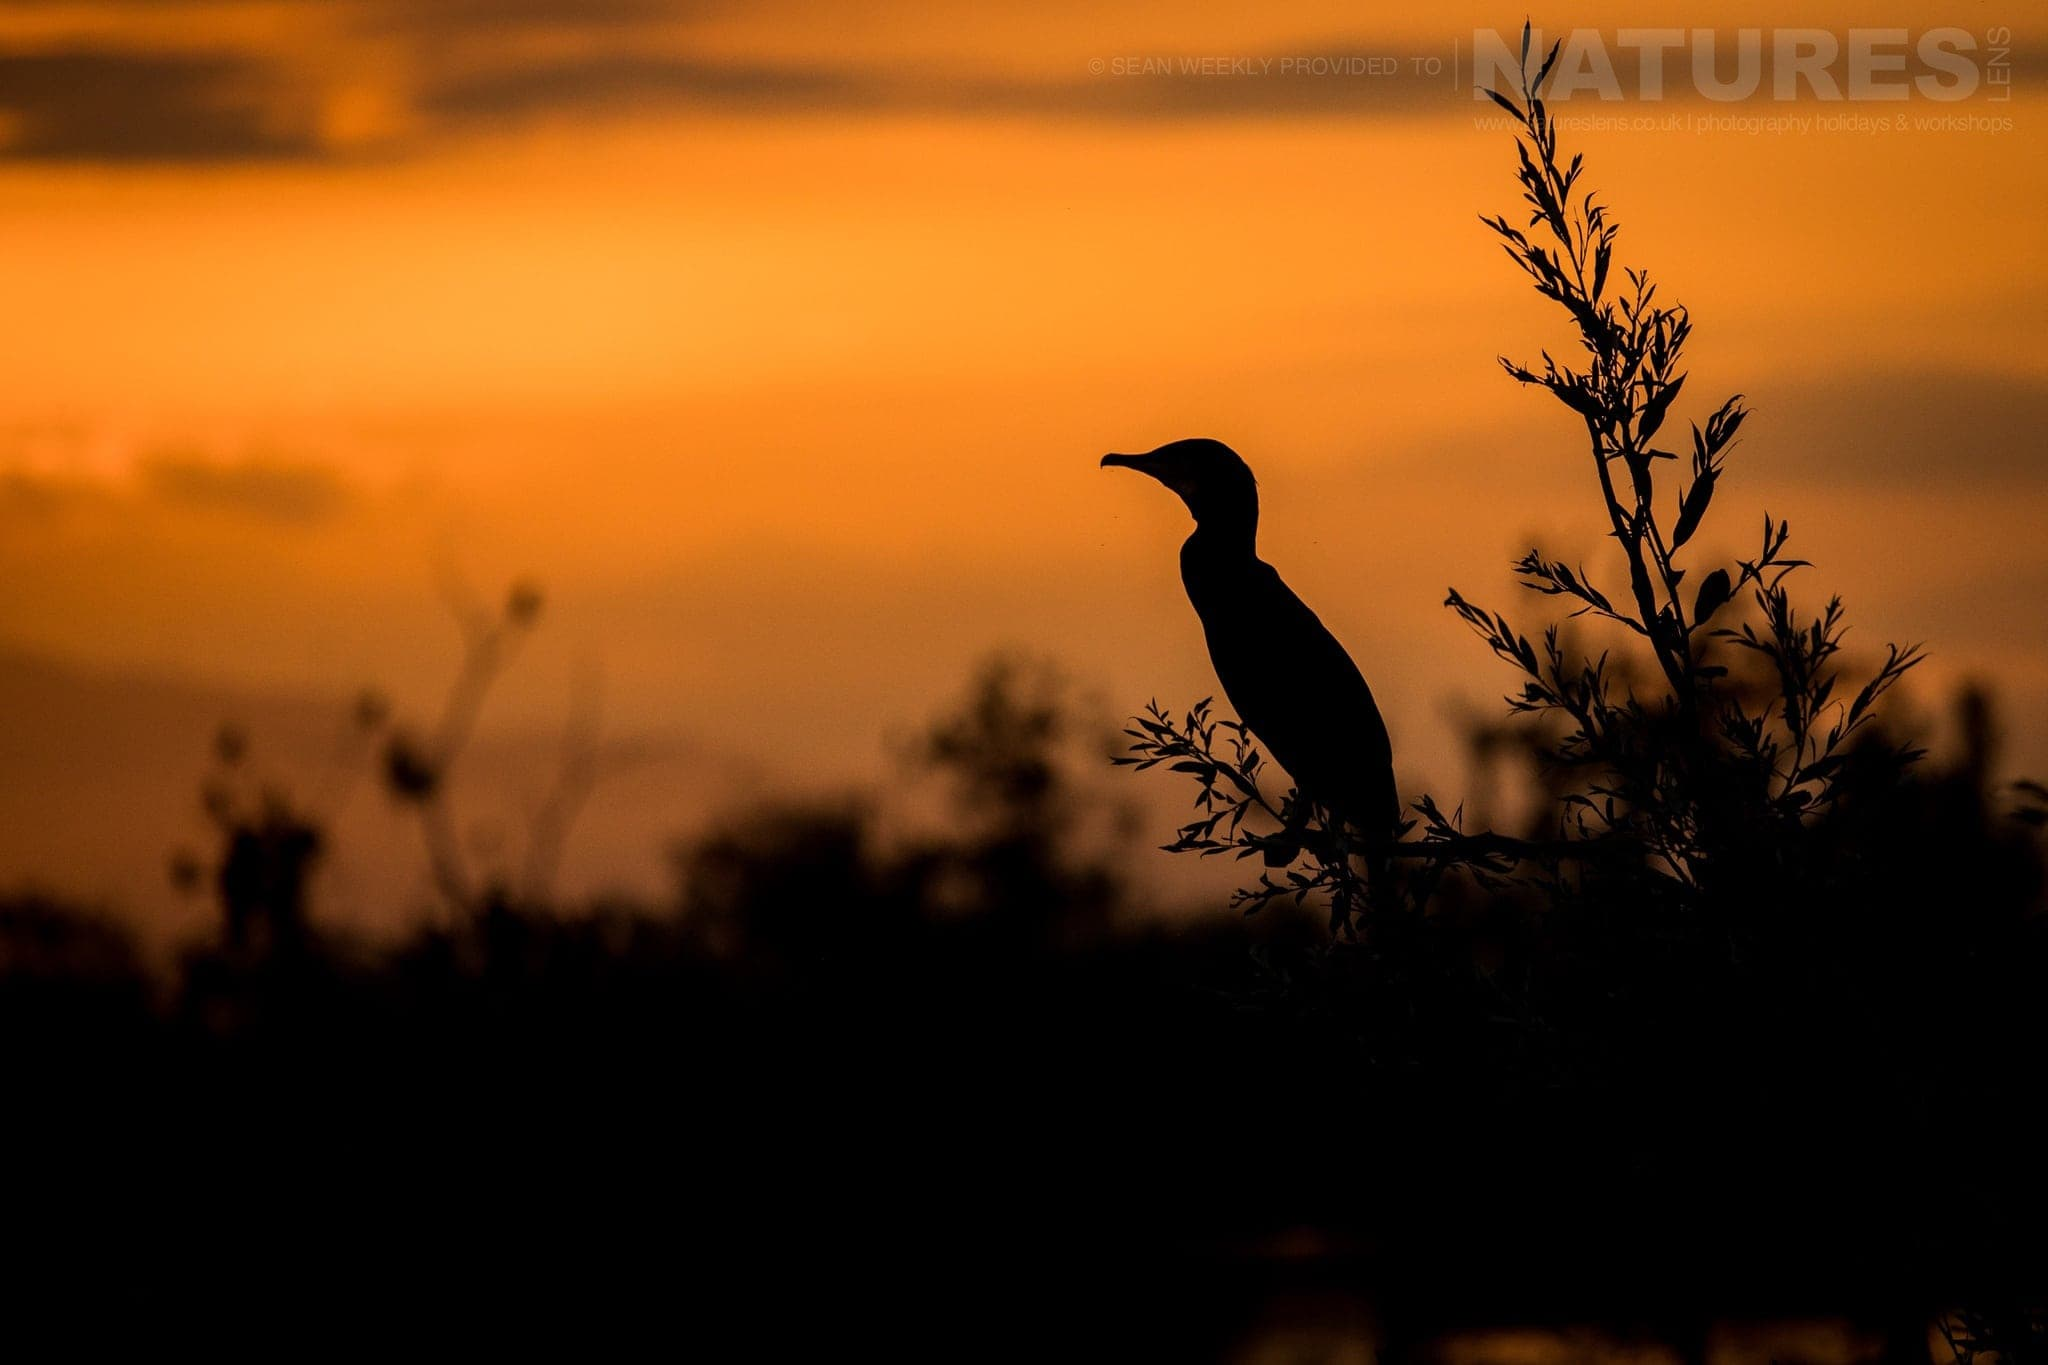 We Head Out Early To Lake Kerkini And Stay Out Late Capturing Silhouettes   Photographed During The NaturesLens Spring Birds Of Lake Kerkini Photography Holiday